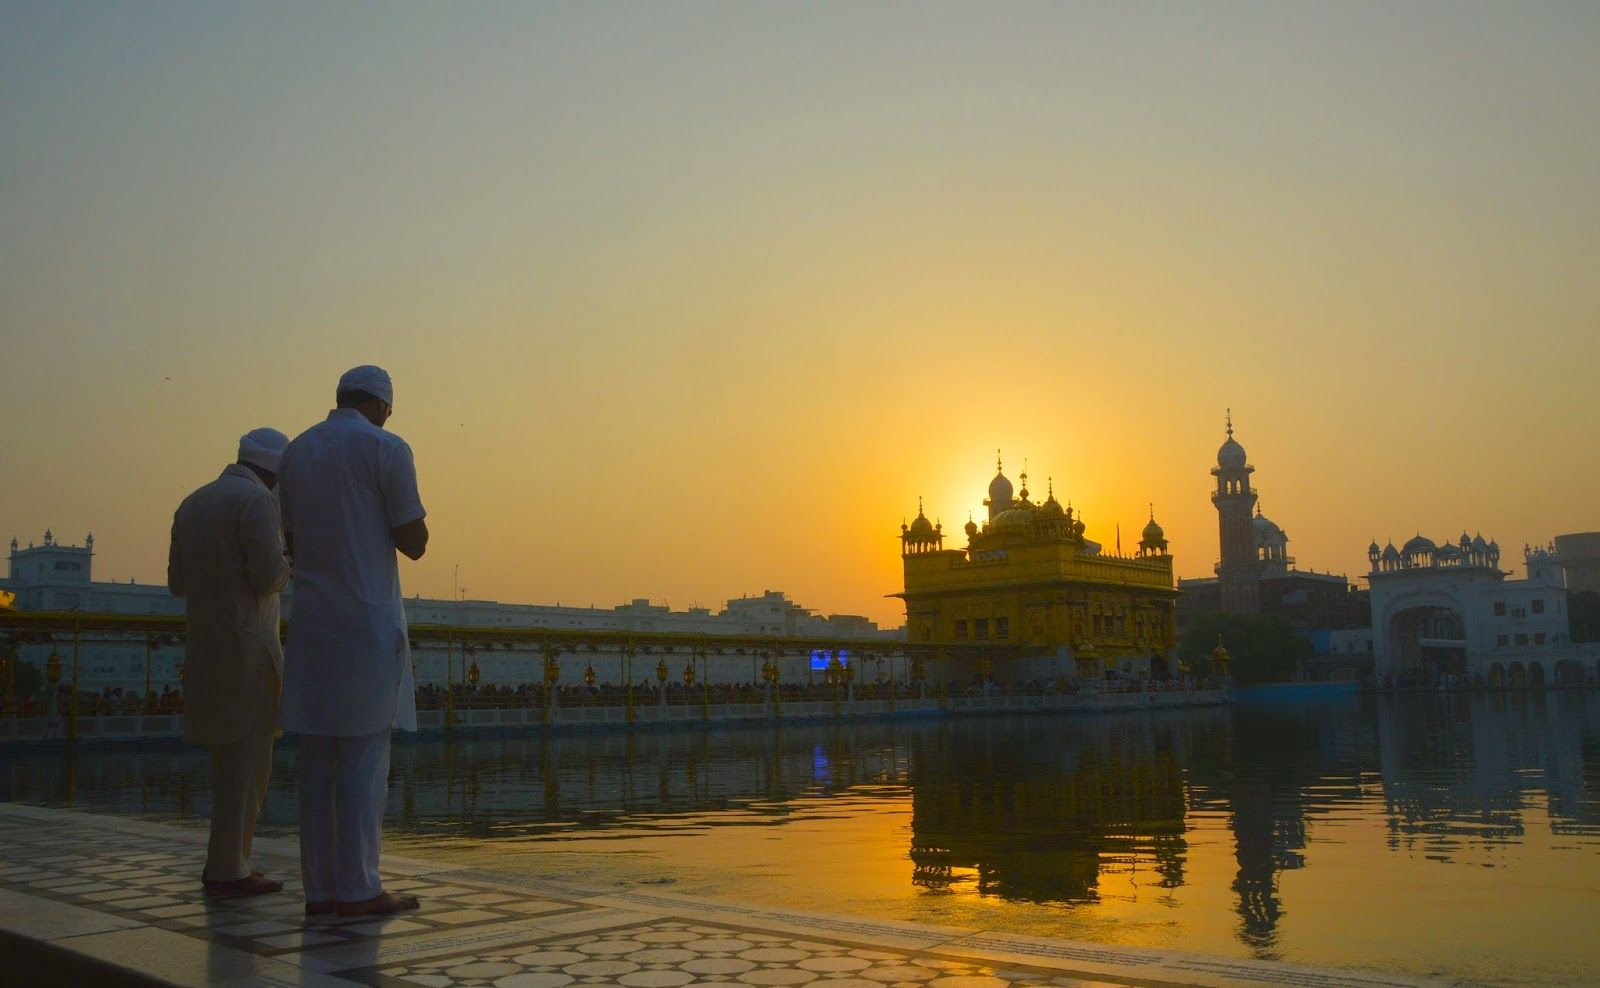 essay on golden temple essay lotus temple best ideas about  best ideas about harmandir sahib golden temple 17 best ideas about harmandir sahib golden temple amritsar